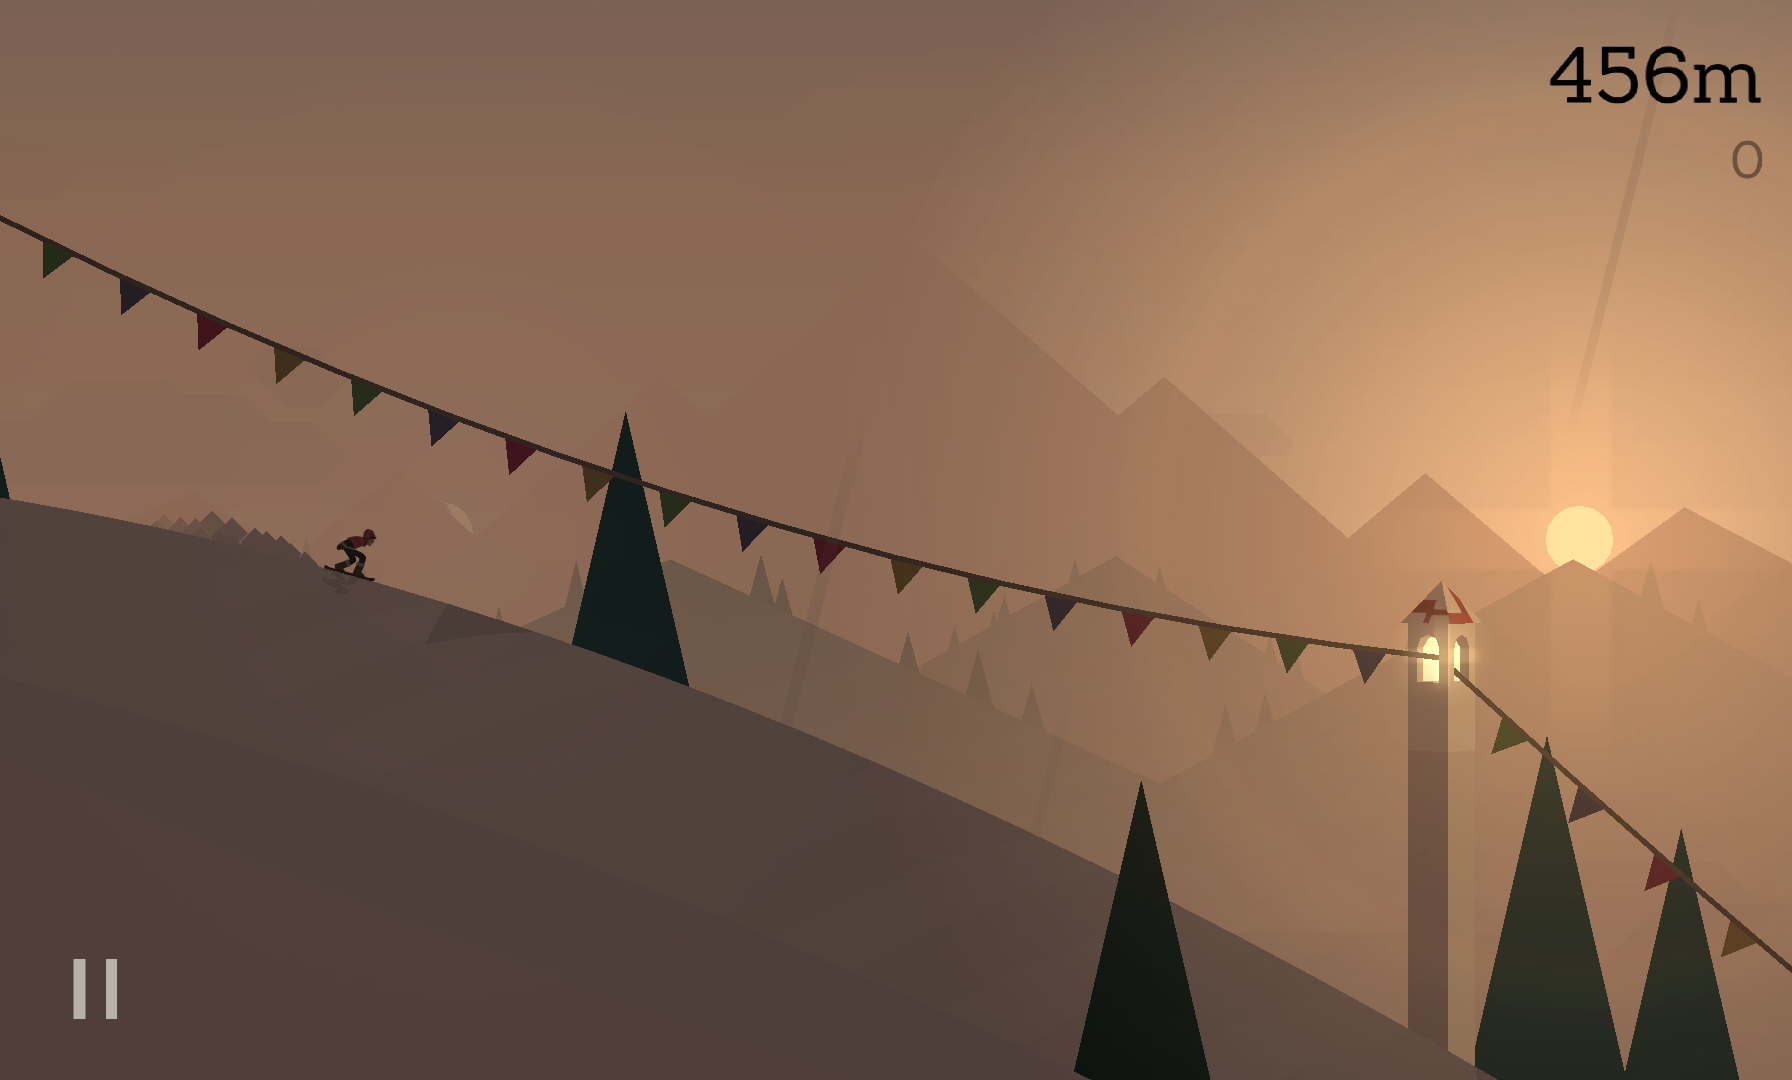 Alto's Adventure androidアプリスクリーンショット2